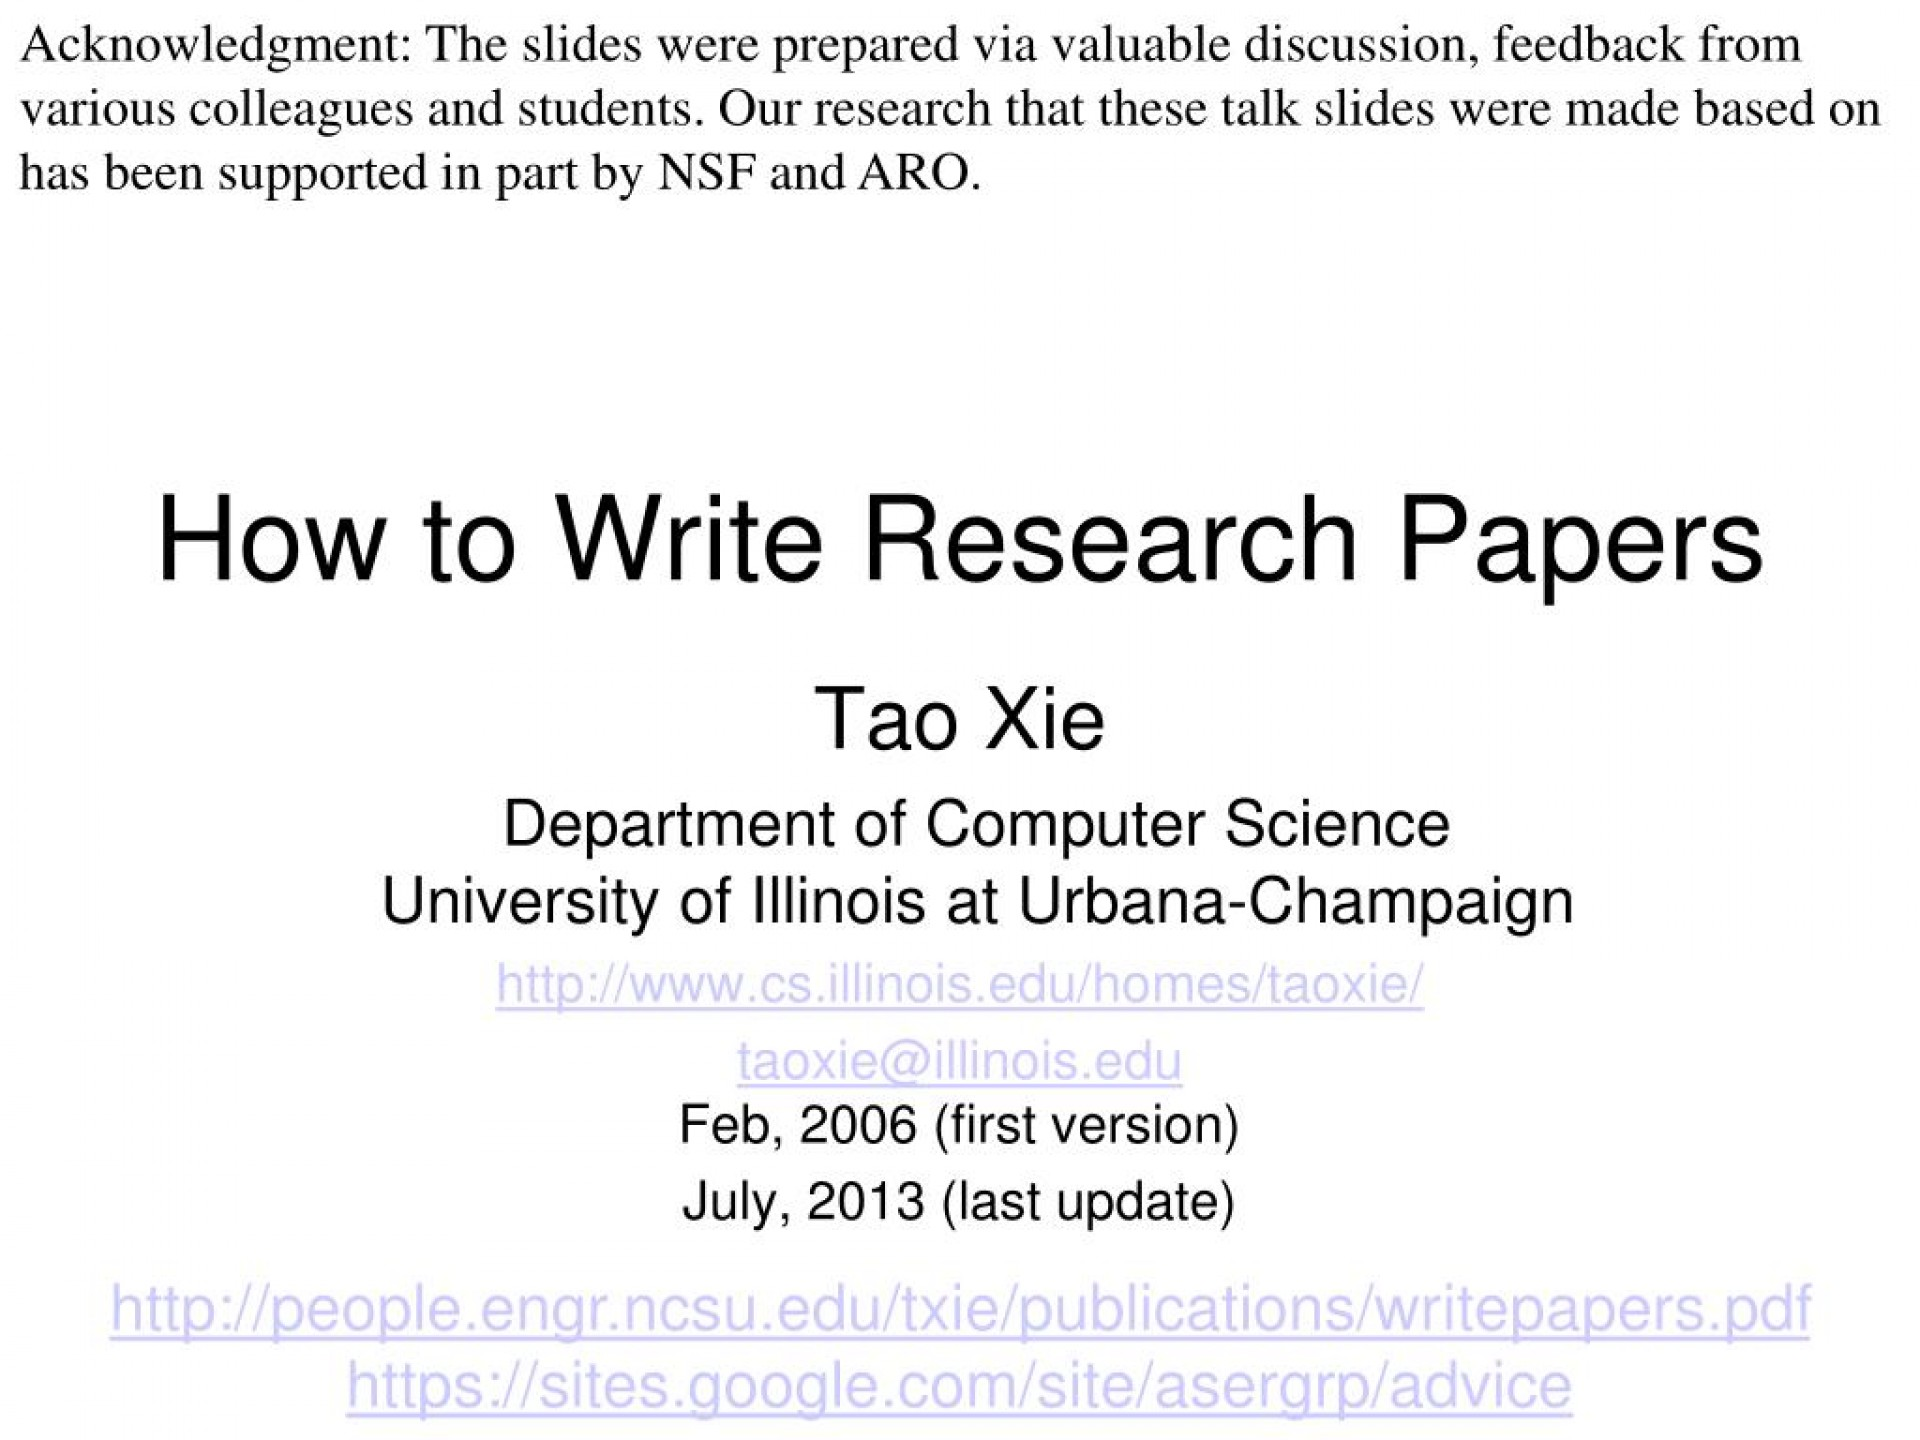 006 How To Write Research Papers L Paper In Computer Science Wondrous Ppt 1920